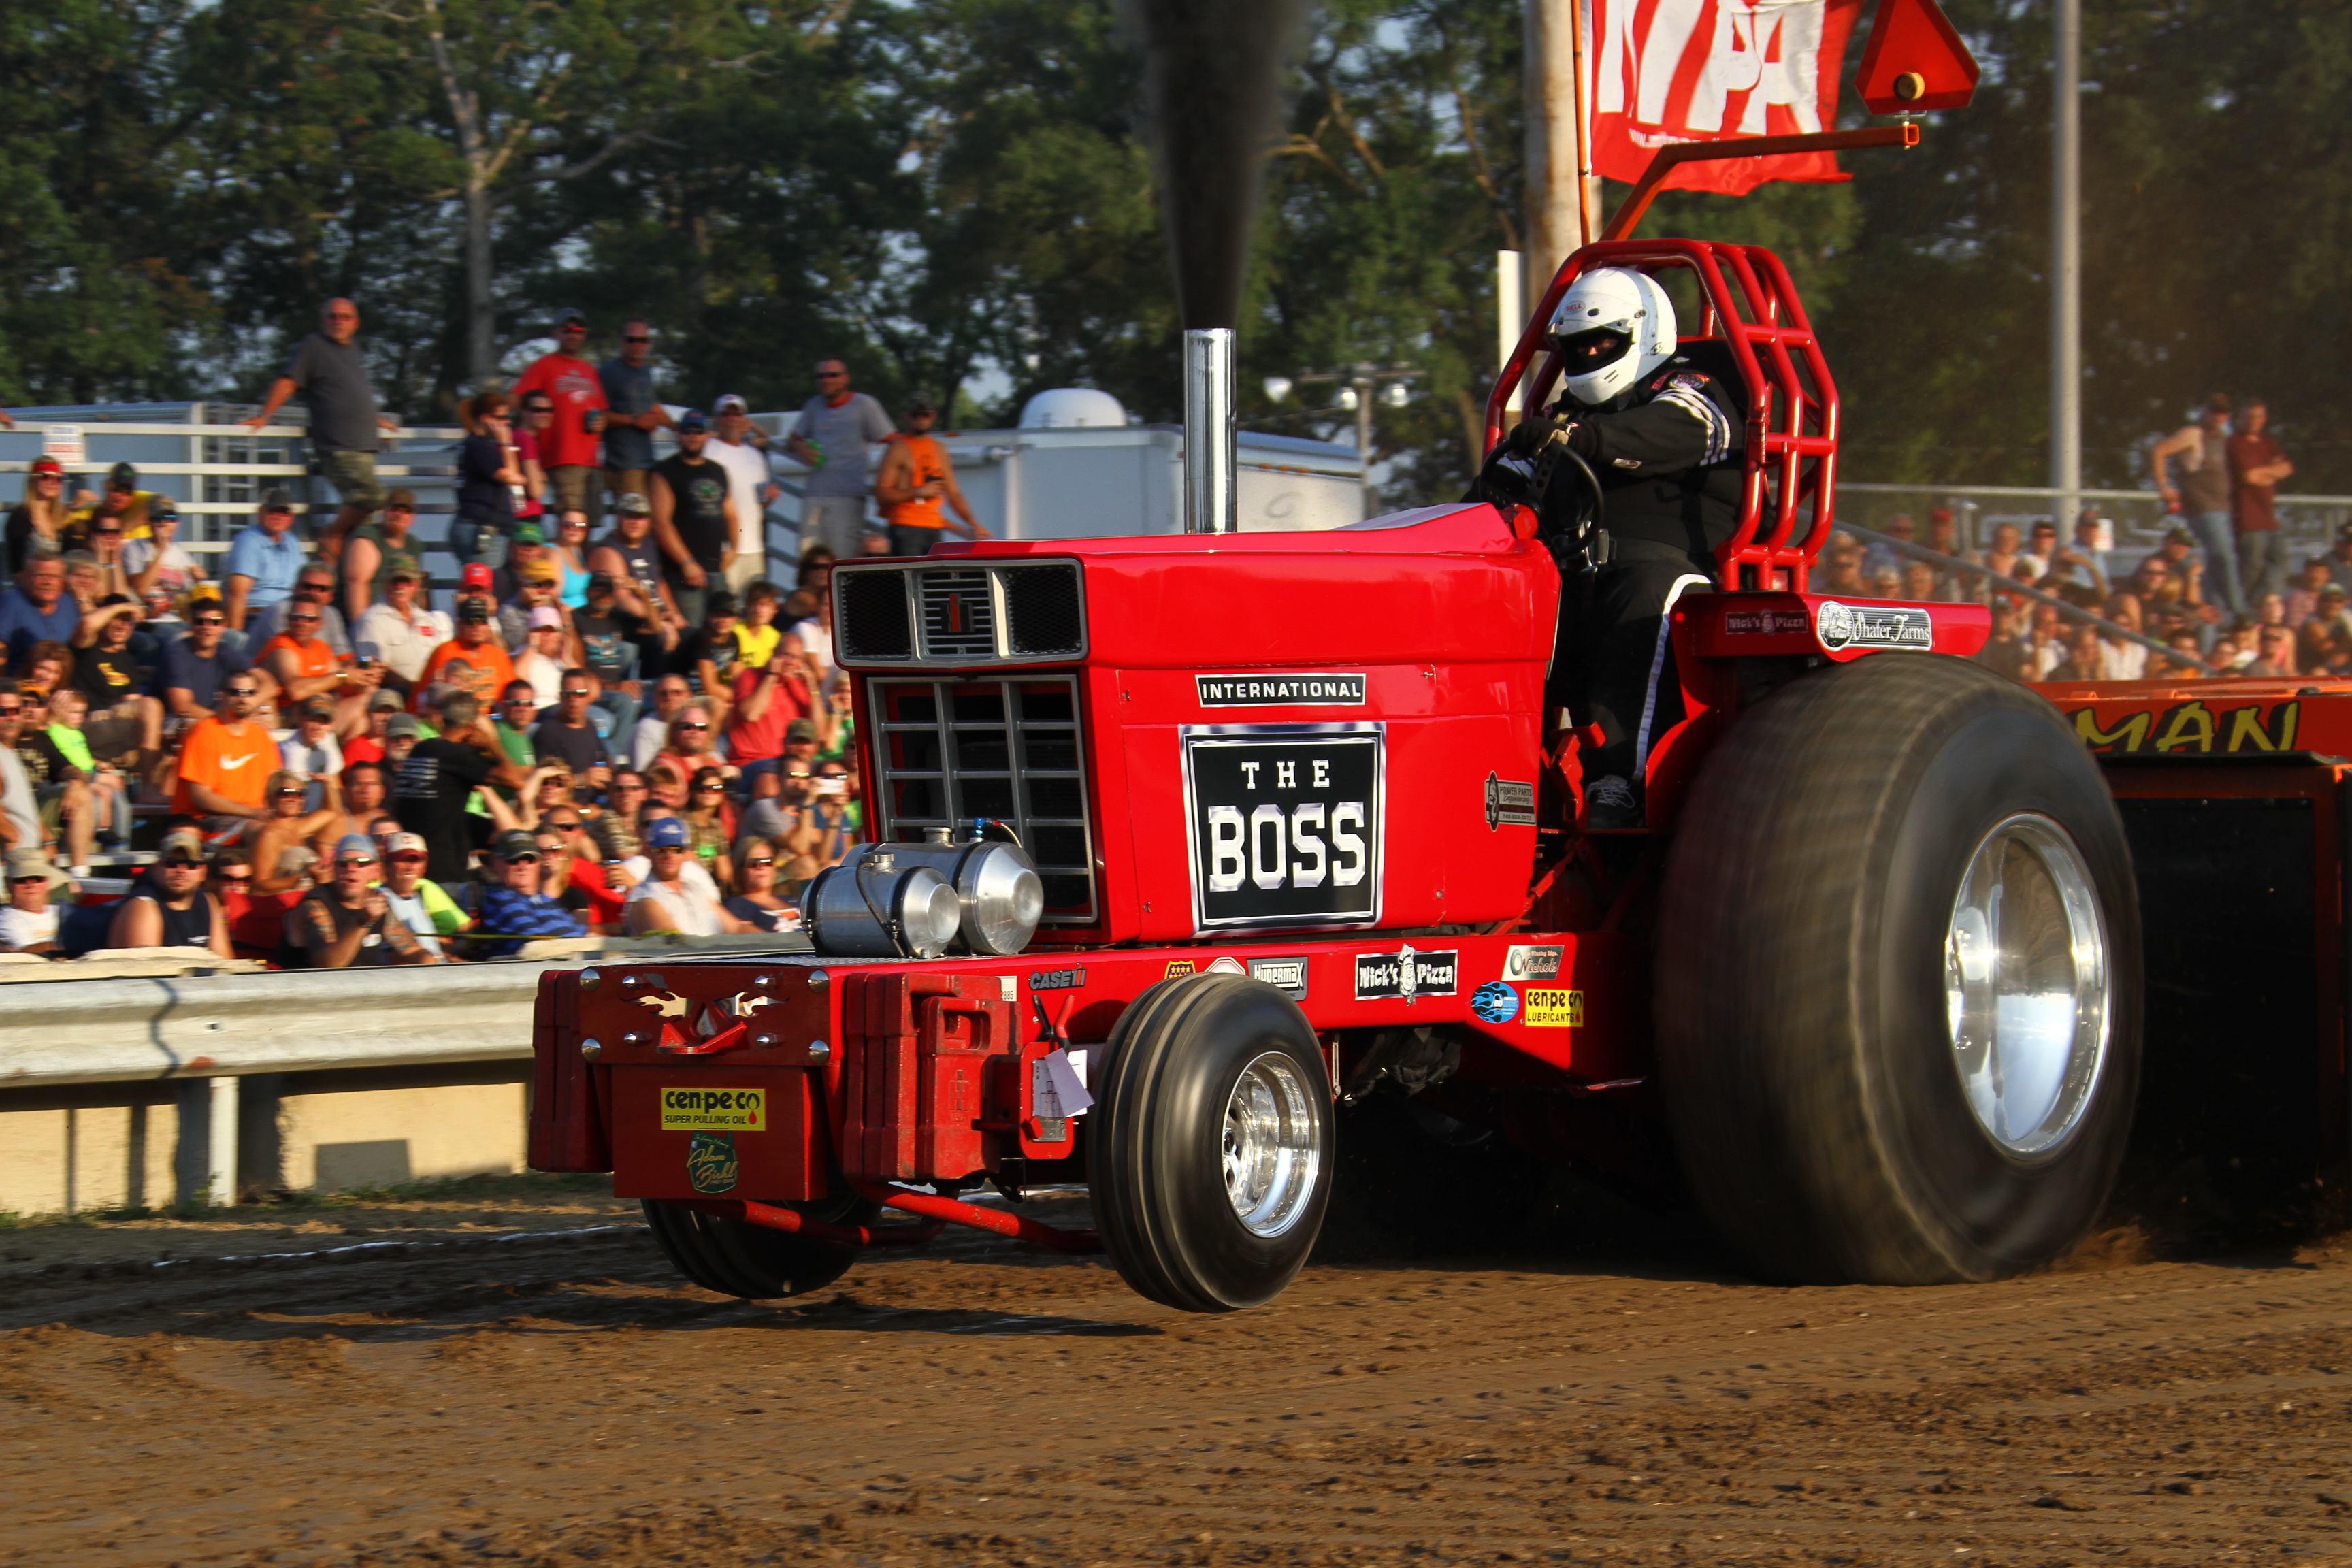 Black White An D Tractor Pulling Wagon : Harness horse racing events get free image about